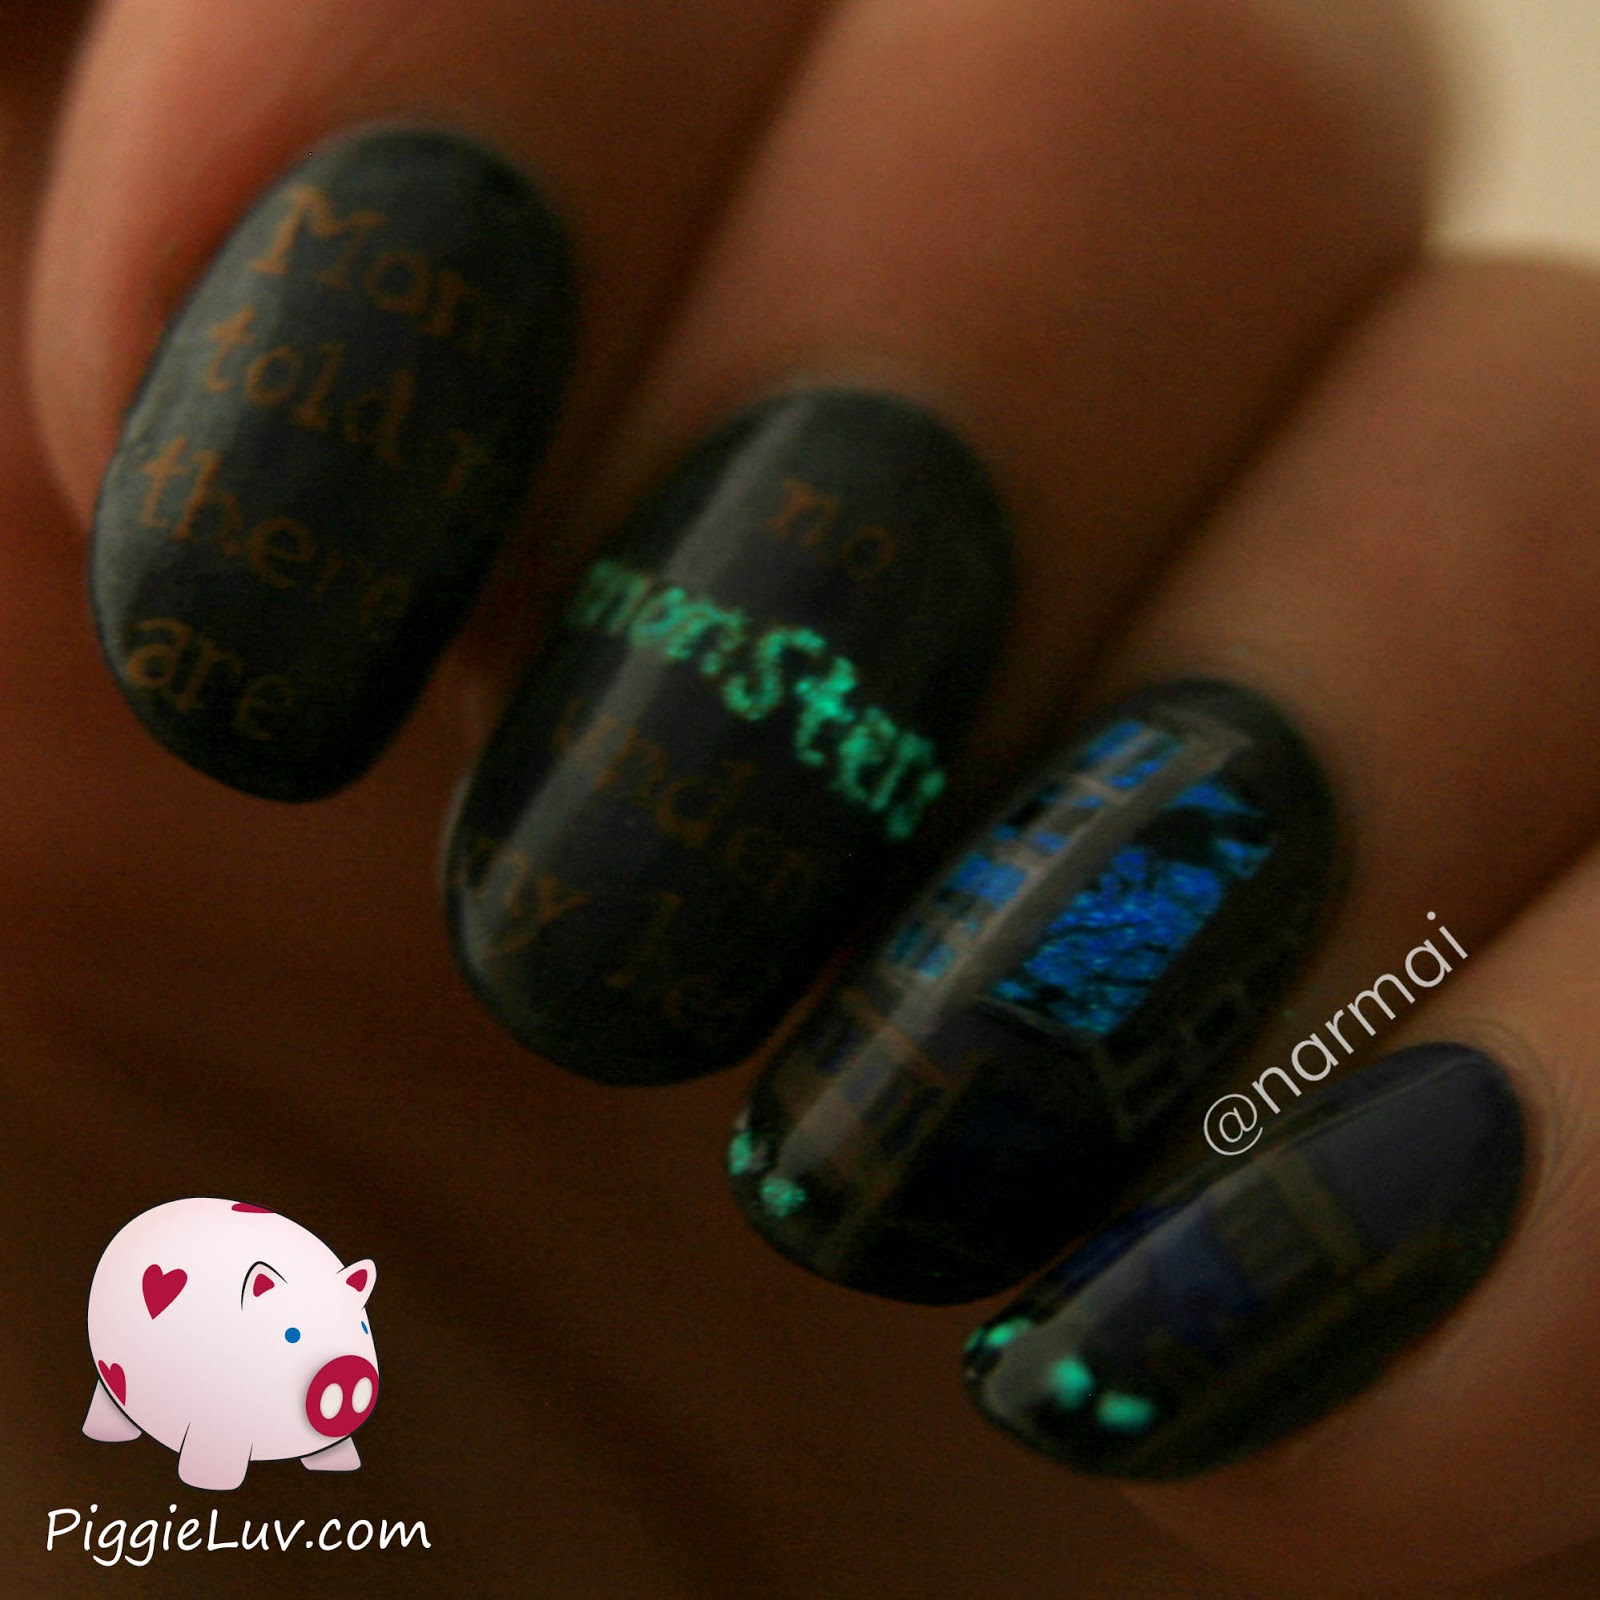 Piggieluv Monsters Under The Bed Glow In The Dark Nail Art